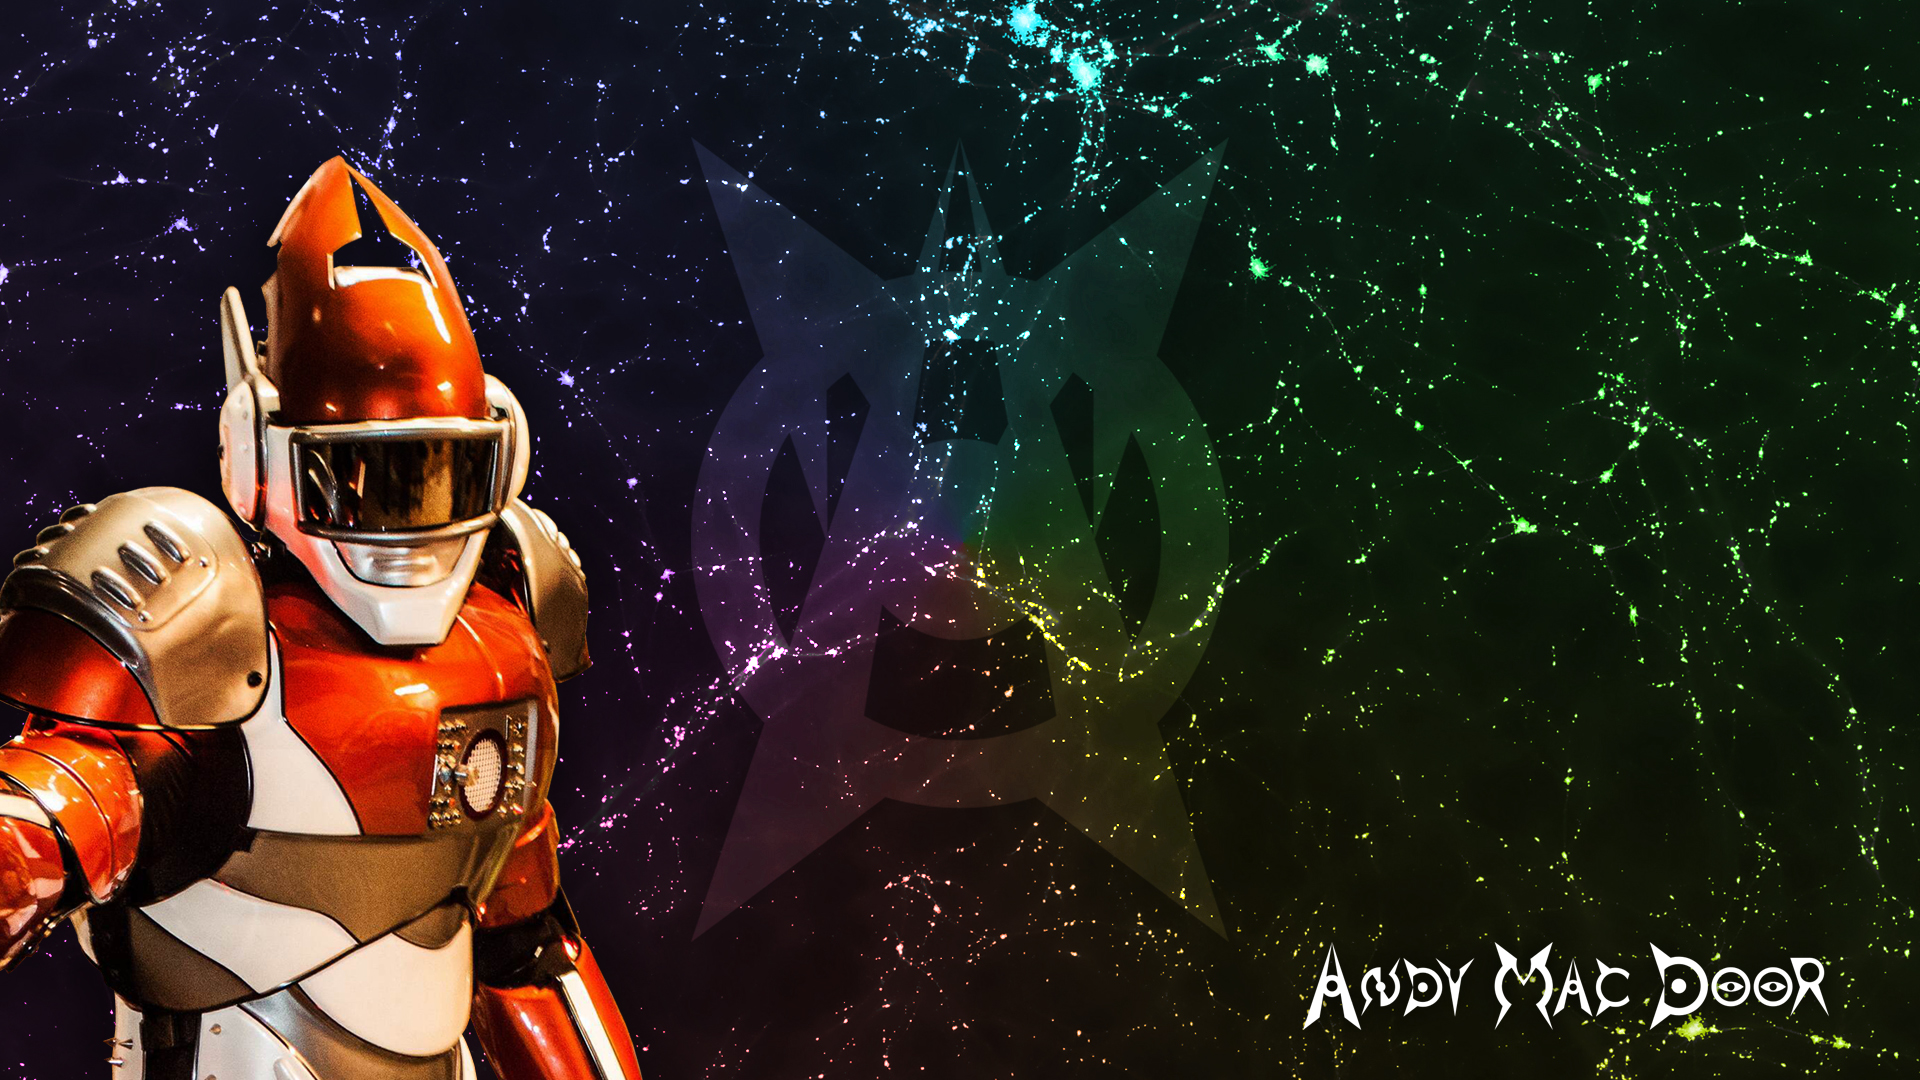 Andy Mac Door andymacdoor wallpaper galaxie galaxy space espace hd fond d écran 1